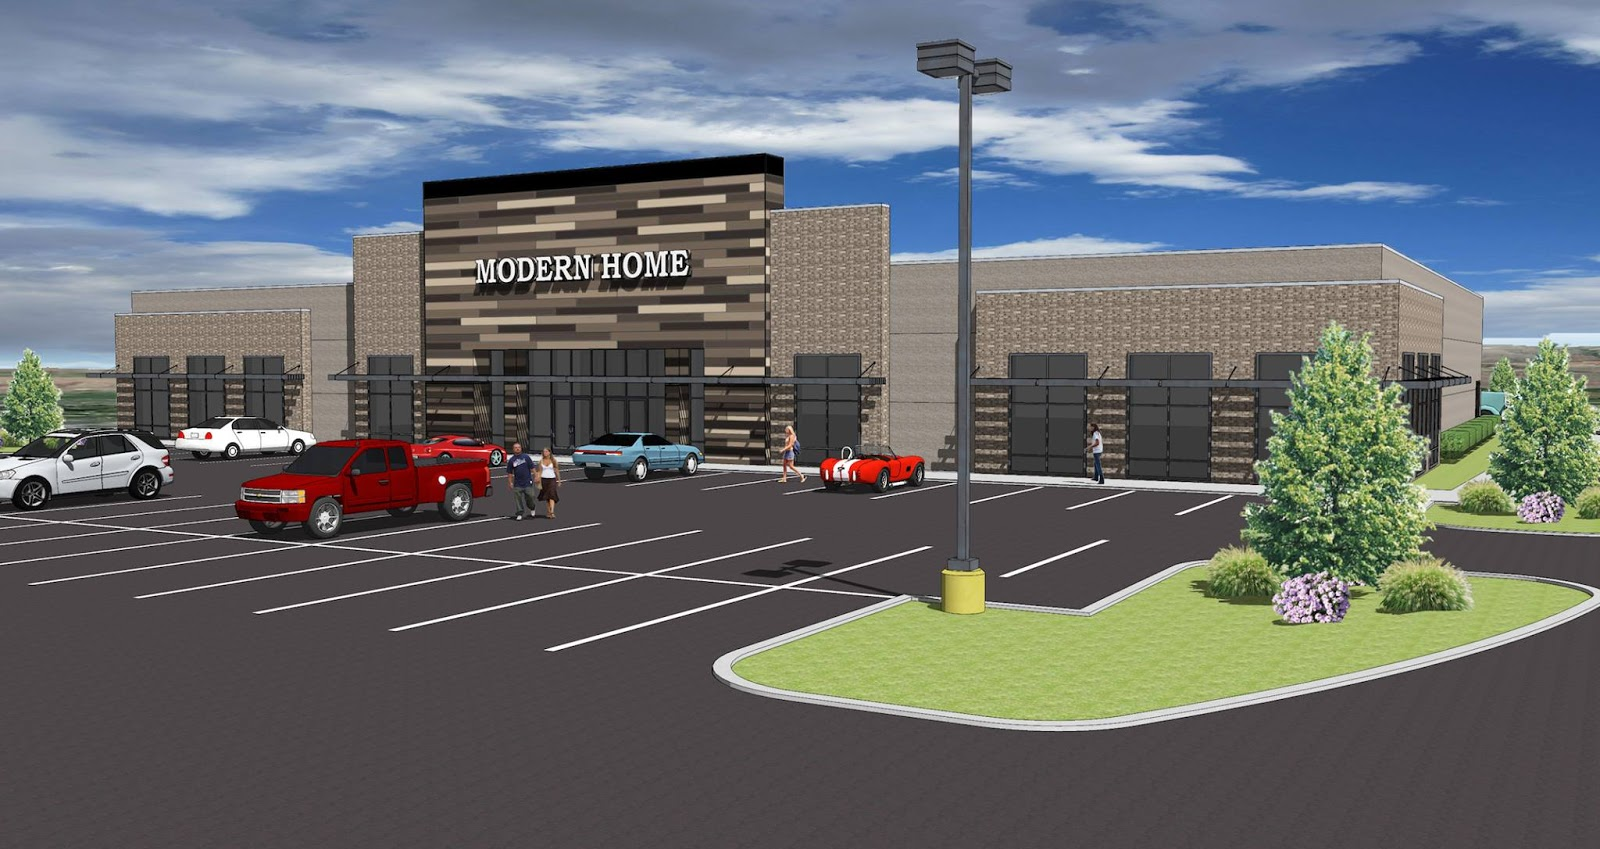 New Furniture Store Being Built On Eagle Drive